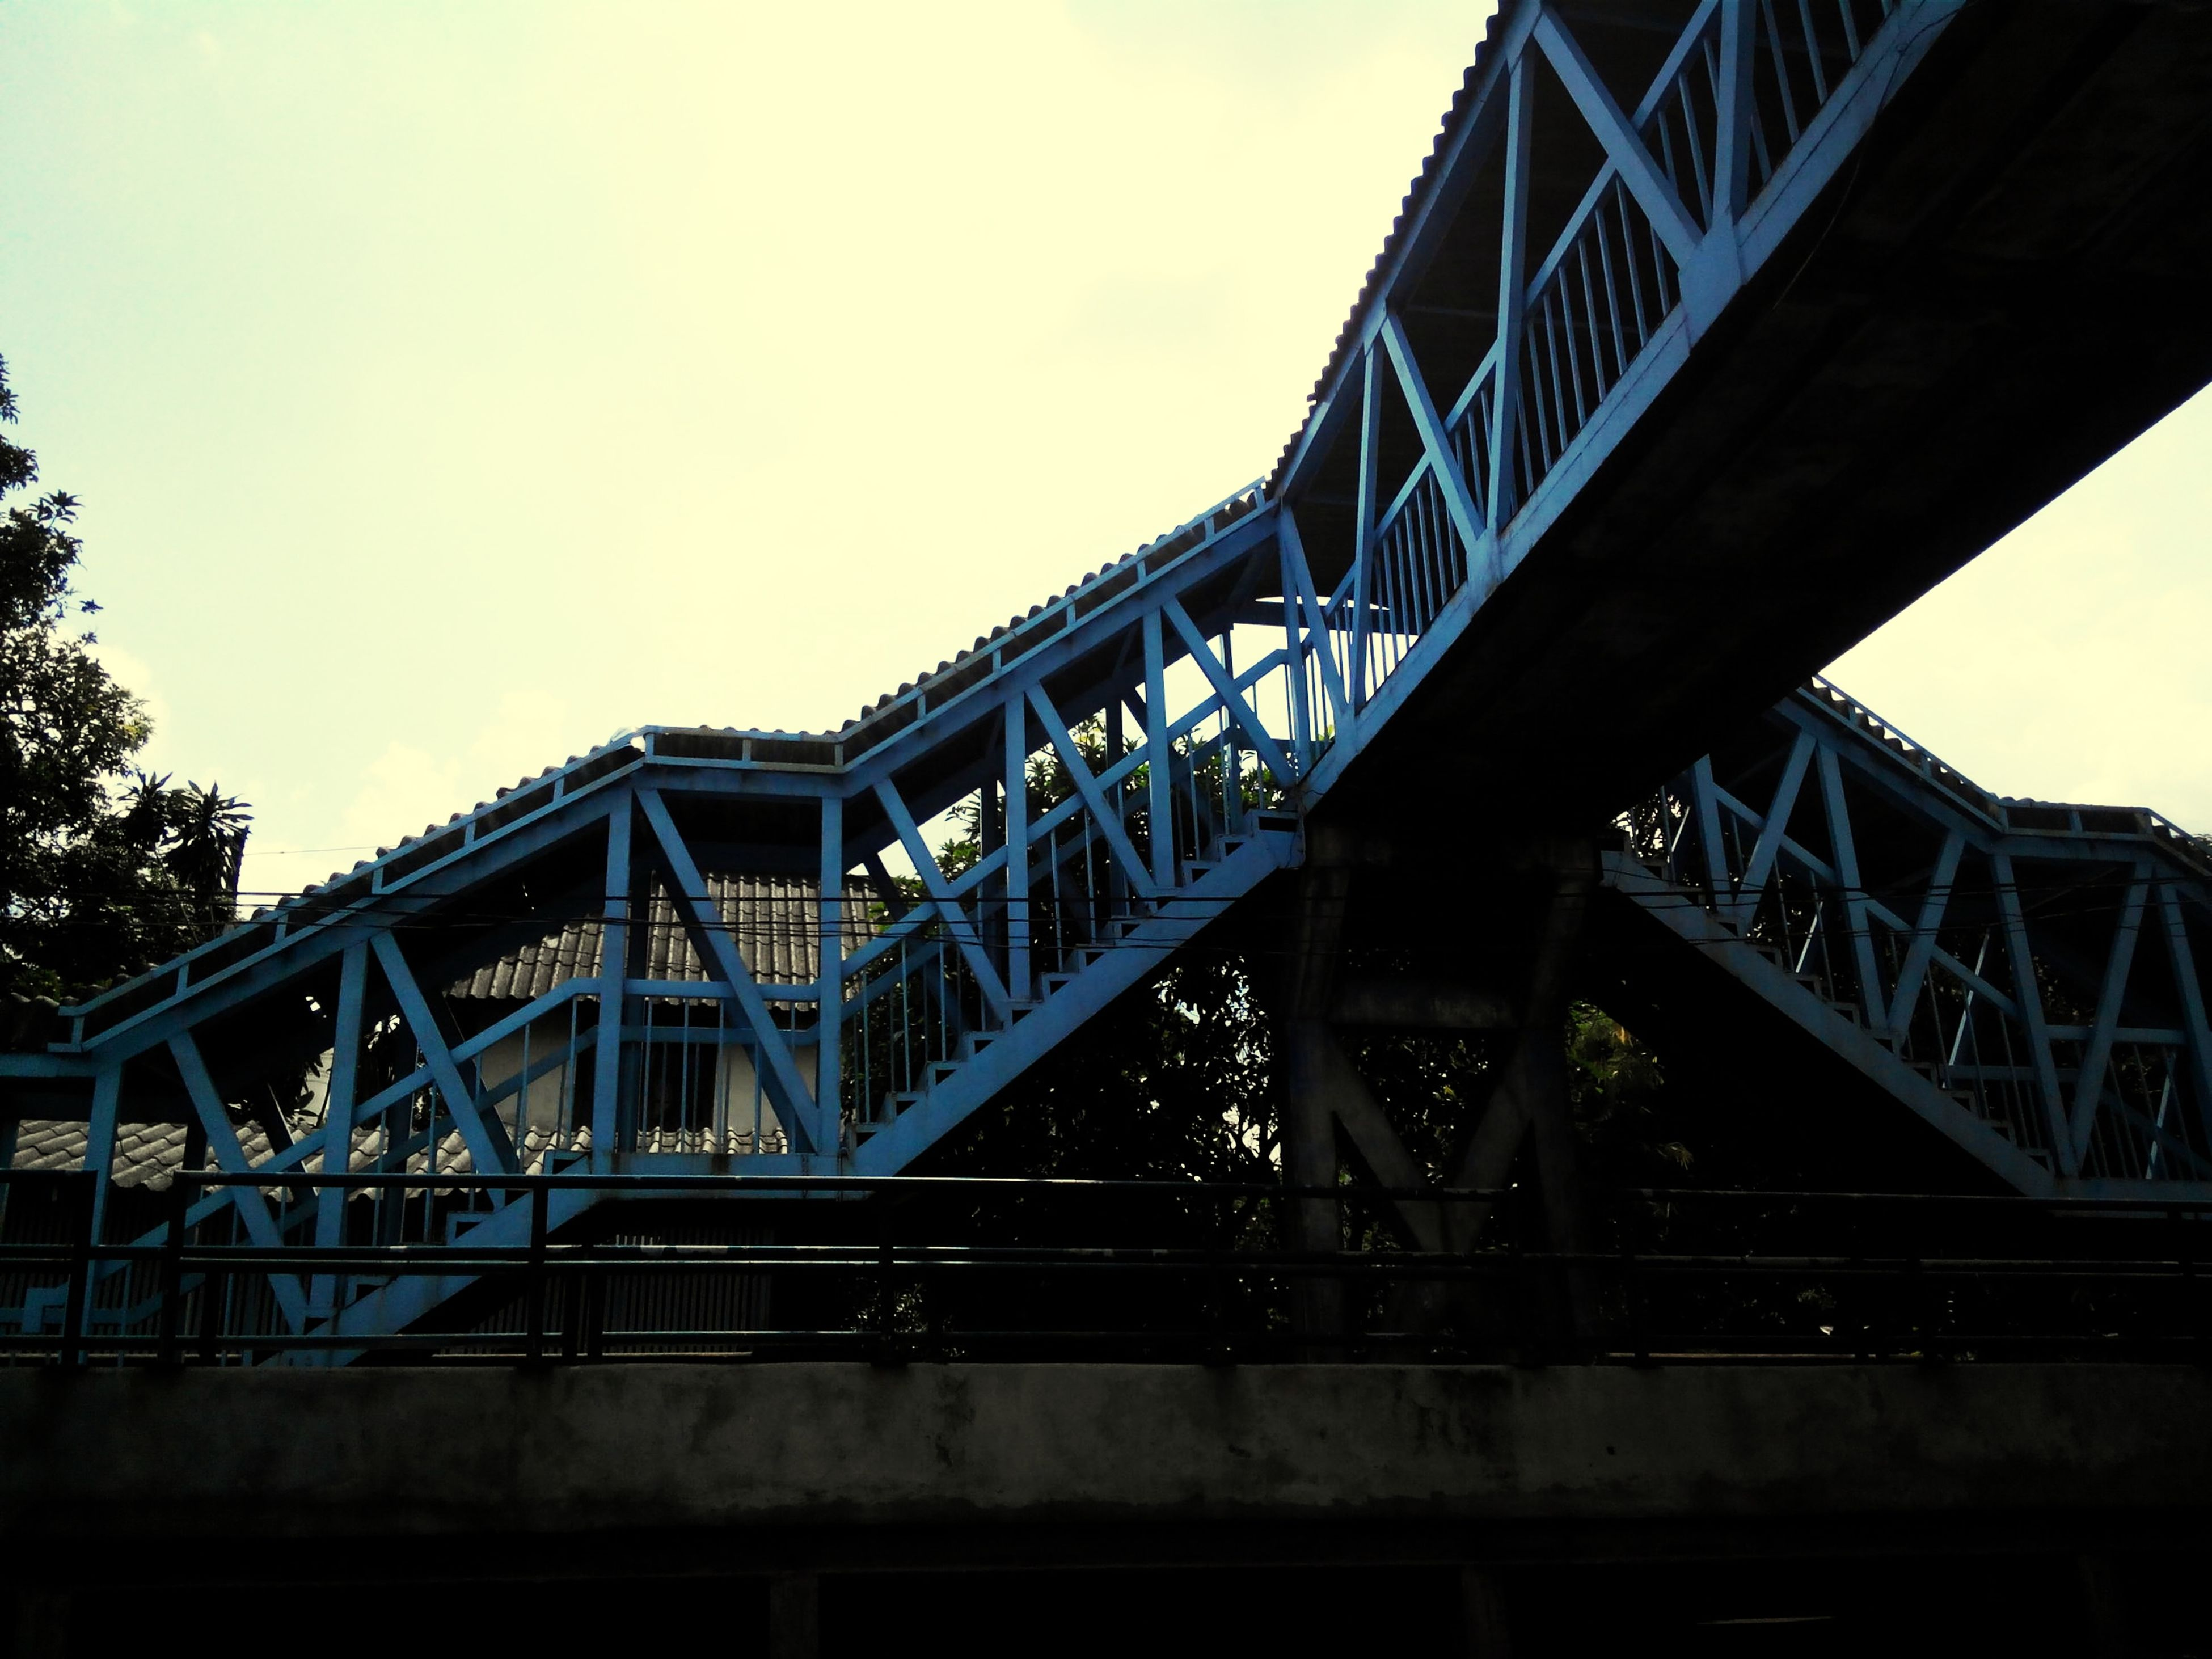 architecture, built structure, bridge - man made structure, connection, low angle view, engineering, clear sky, transportation, metal, bridge, sky, railing, copy space, railway bridge, metallic, outdoors, day, no people, building exterior, city